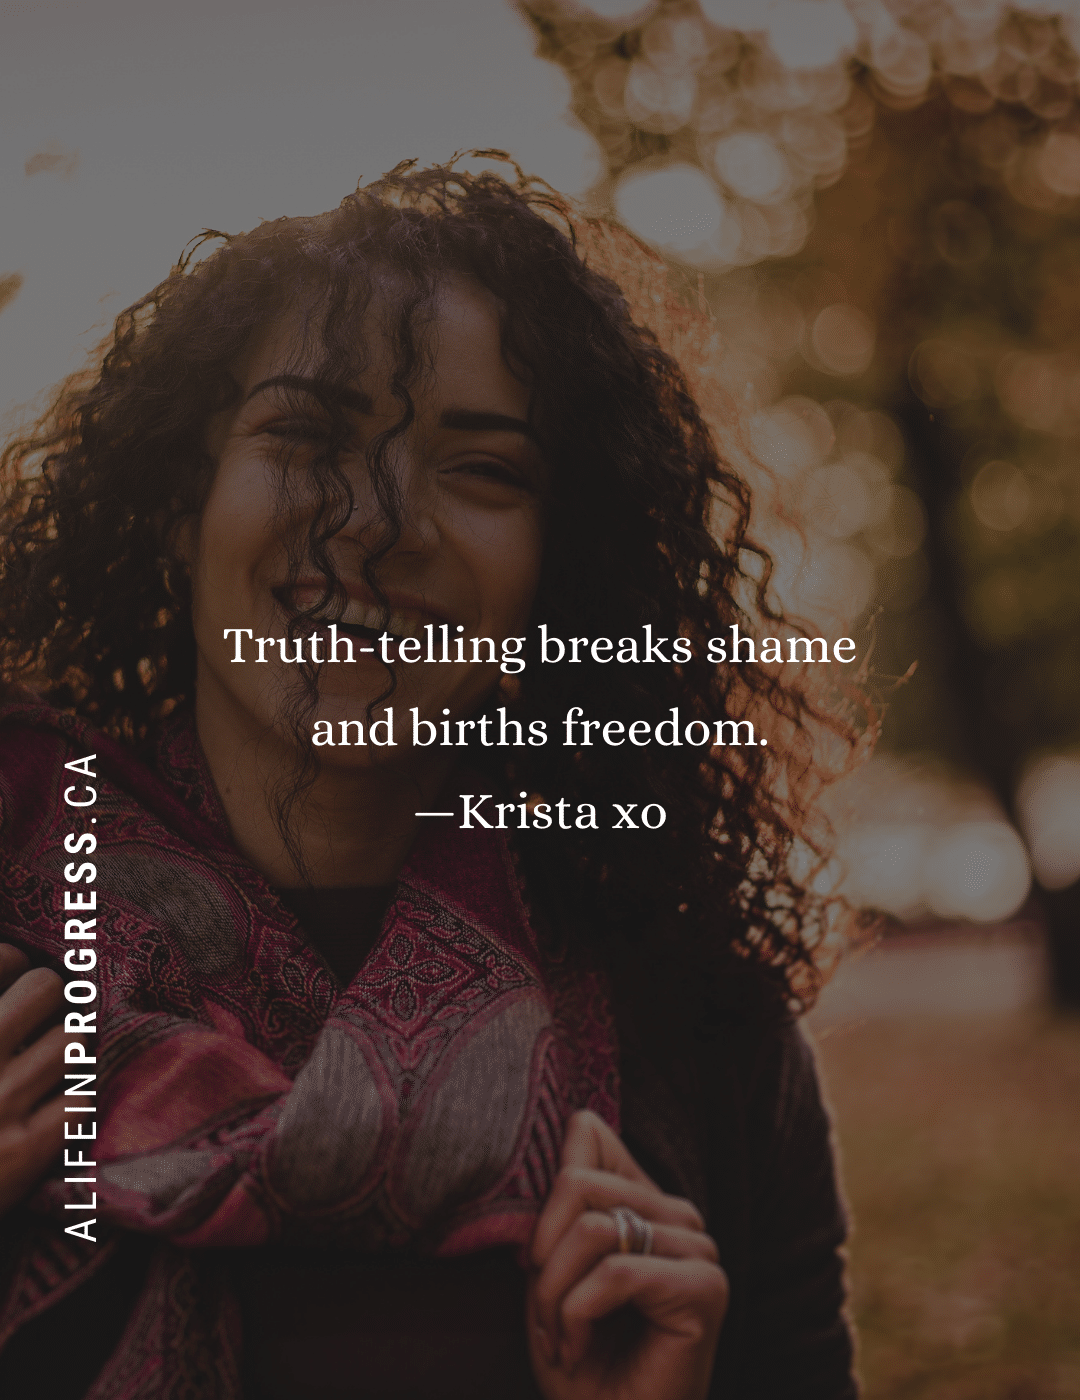 Come home to yourself: Truth-telling breaks shame and births freedom.